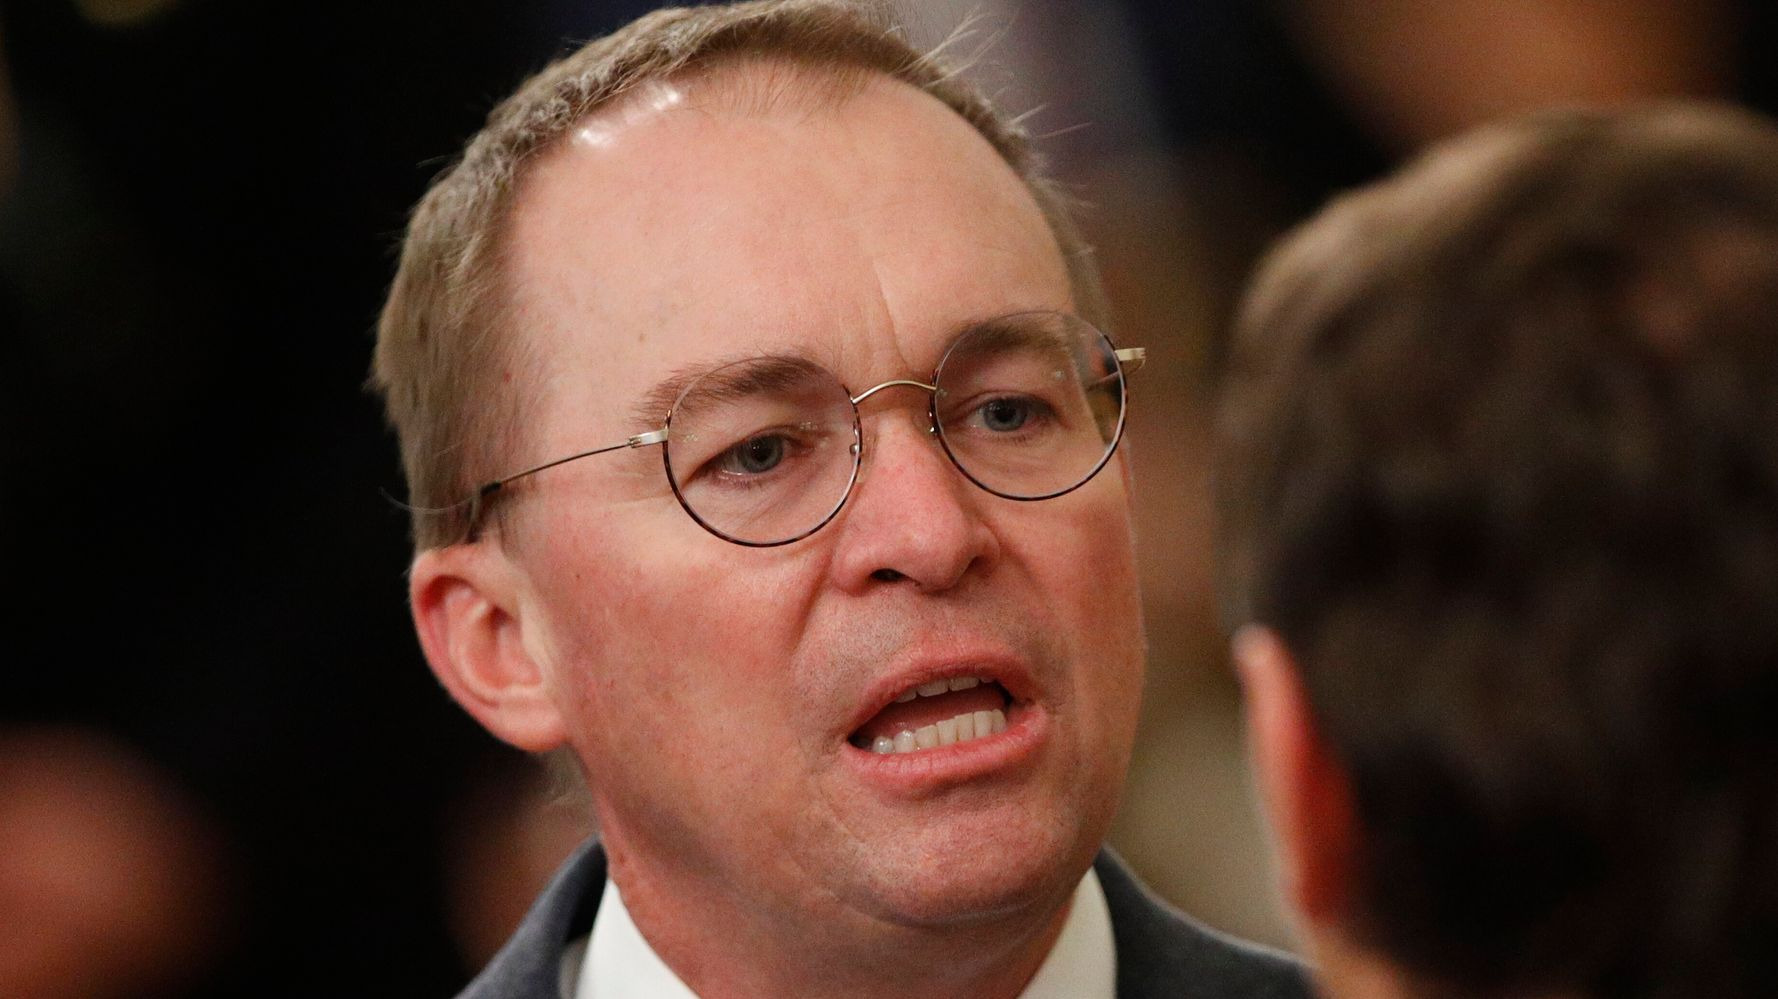 Mick Mulvaney Says U.S. Is 'Desperate' For Immigrants For Economic Growth: Report